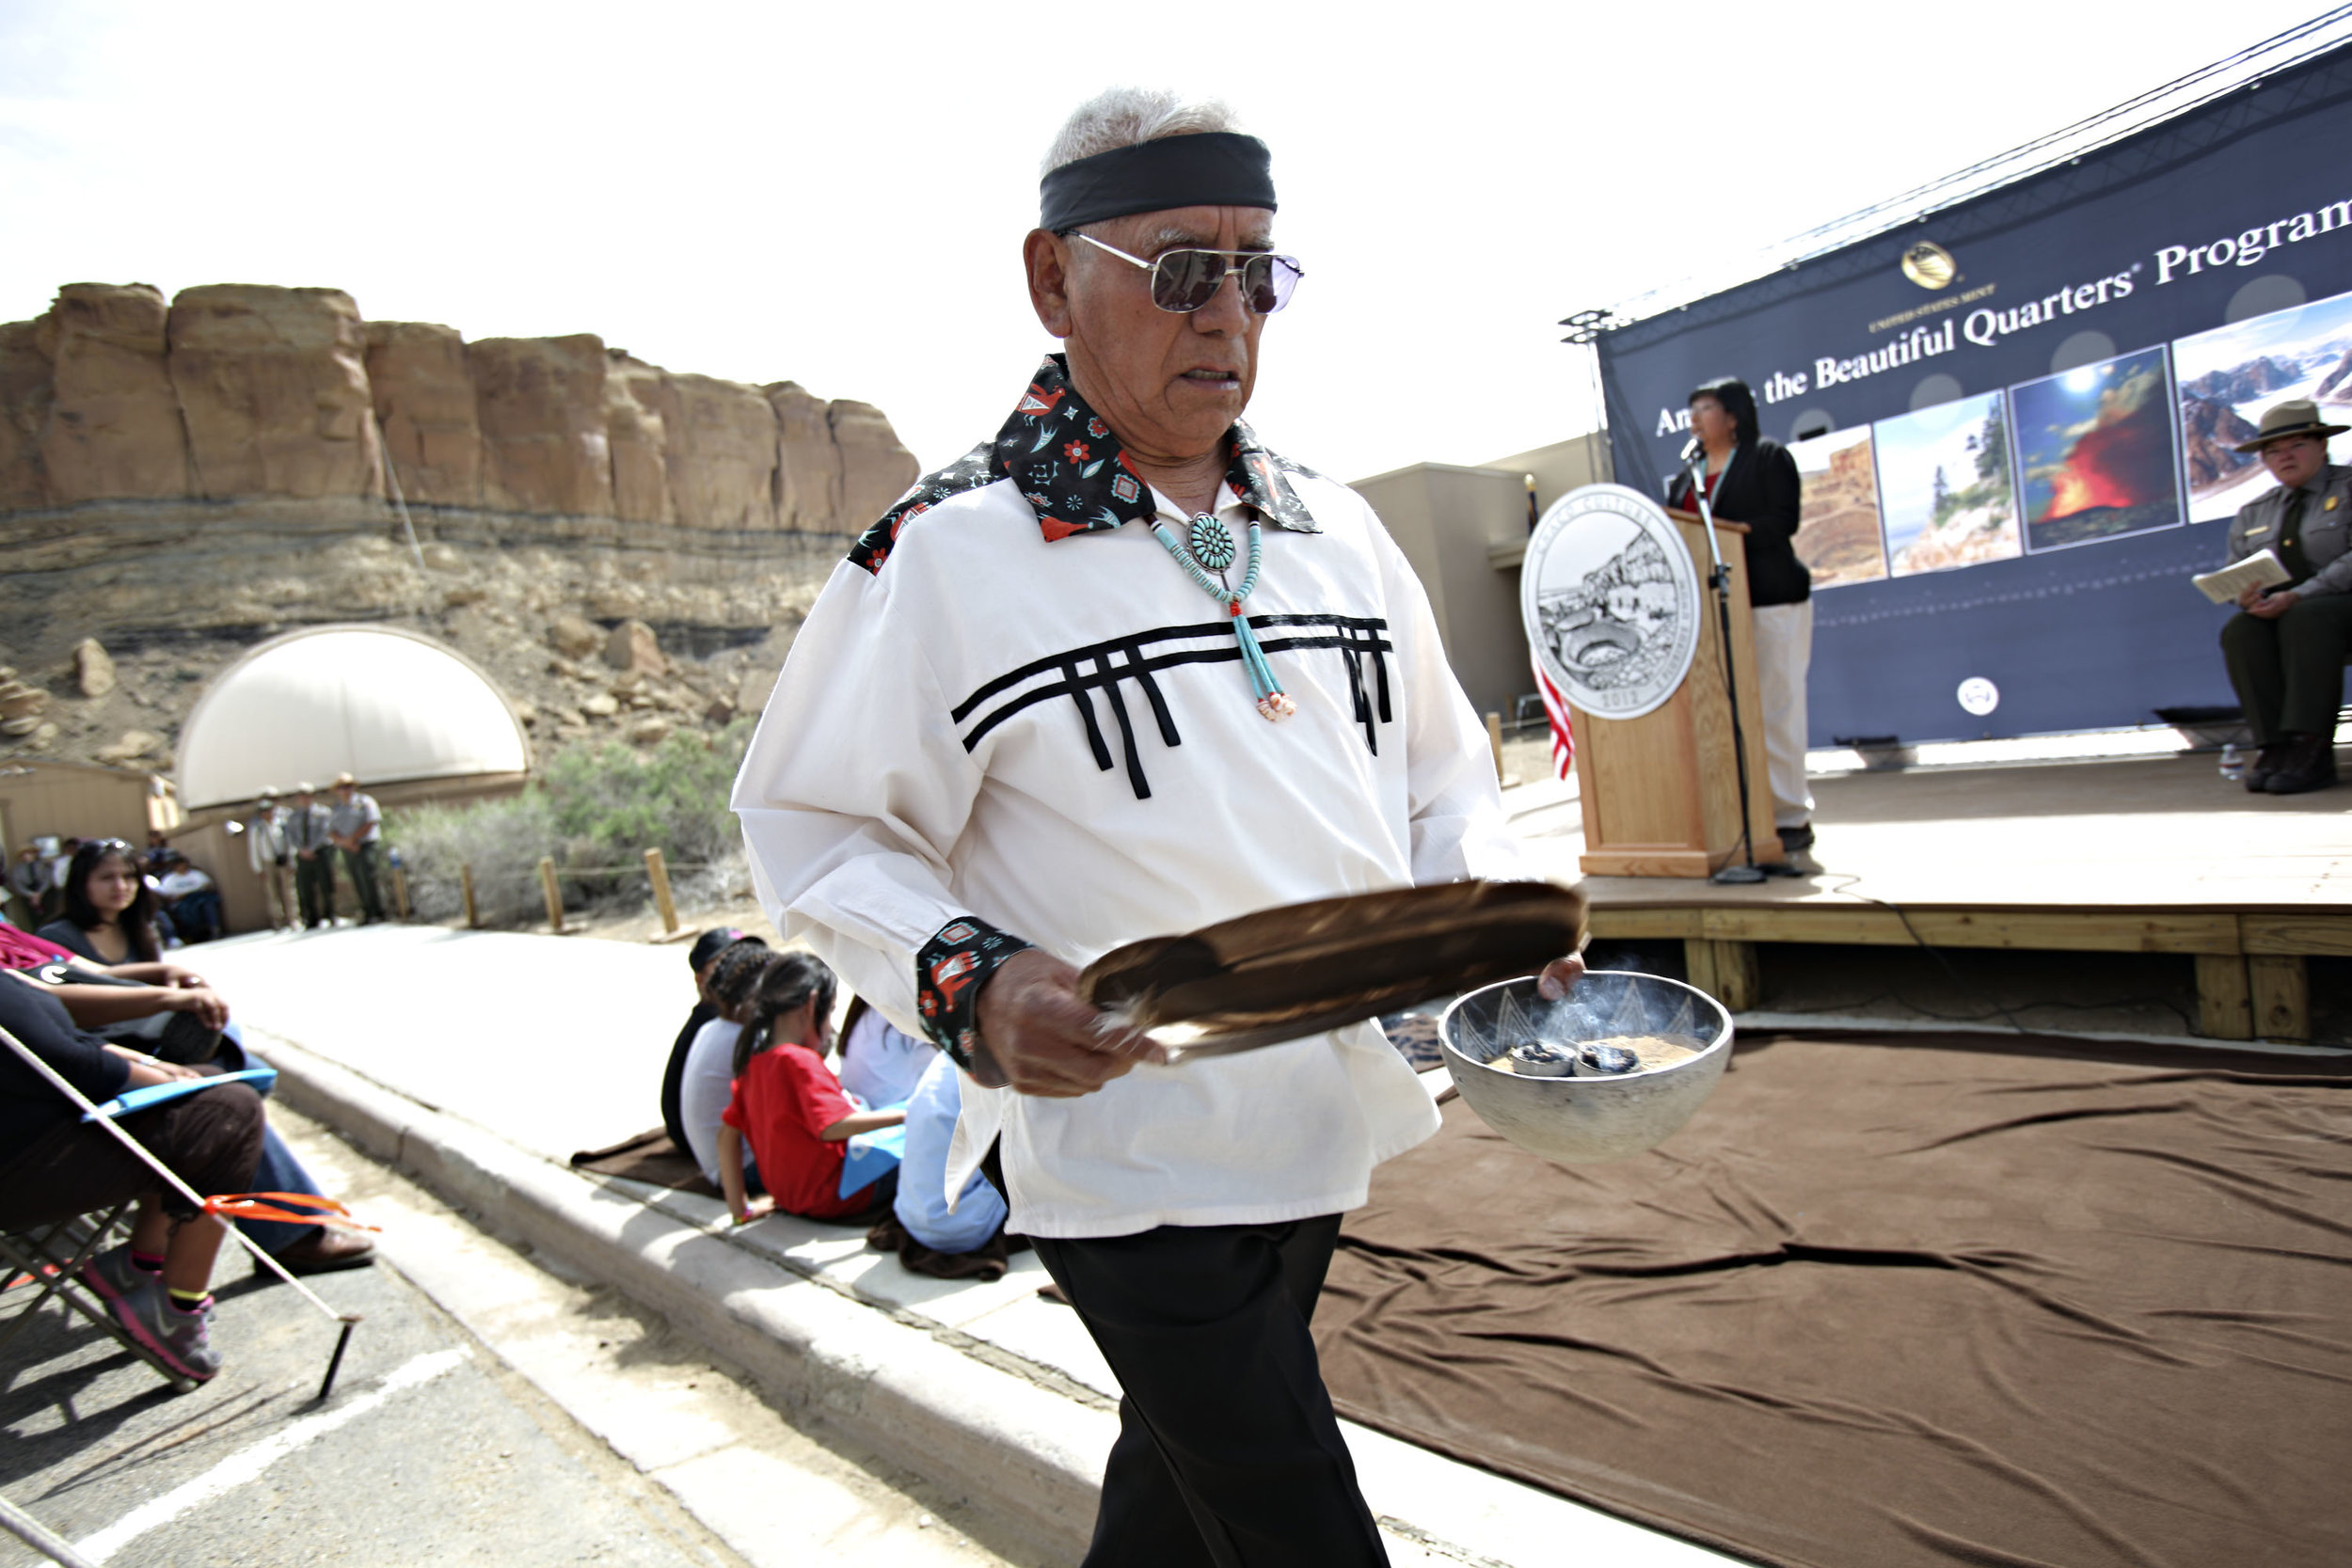 Councilman Ernest M. Vallo Sr., of Acoma Pueblo blesses the new Chaco Canyon visitor center during the quarter launch at Chaco Canyon, Thursday, April 26, 2012. (Morgan Petroski/Albuquerque Journal)